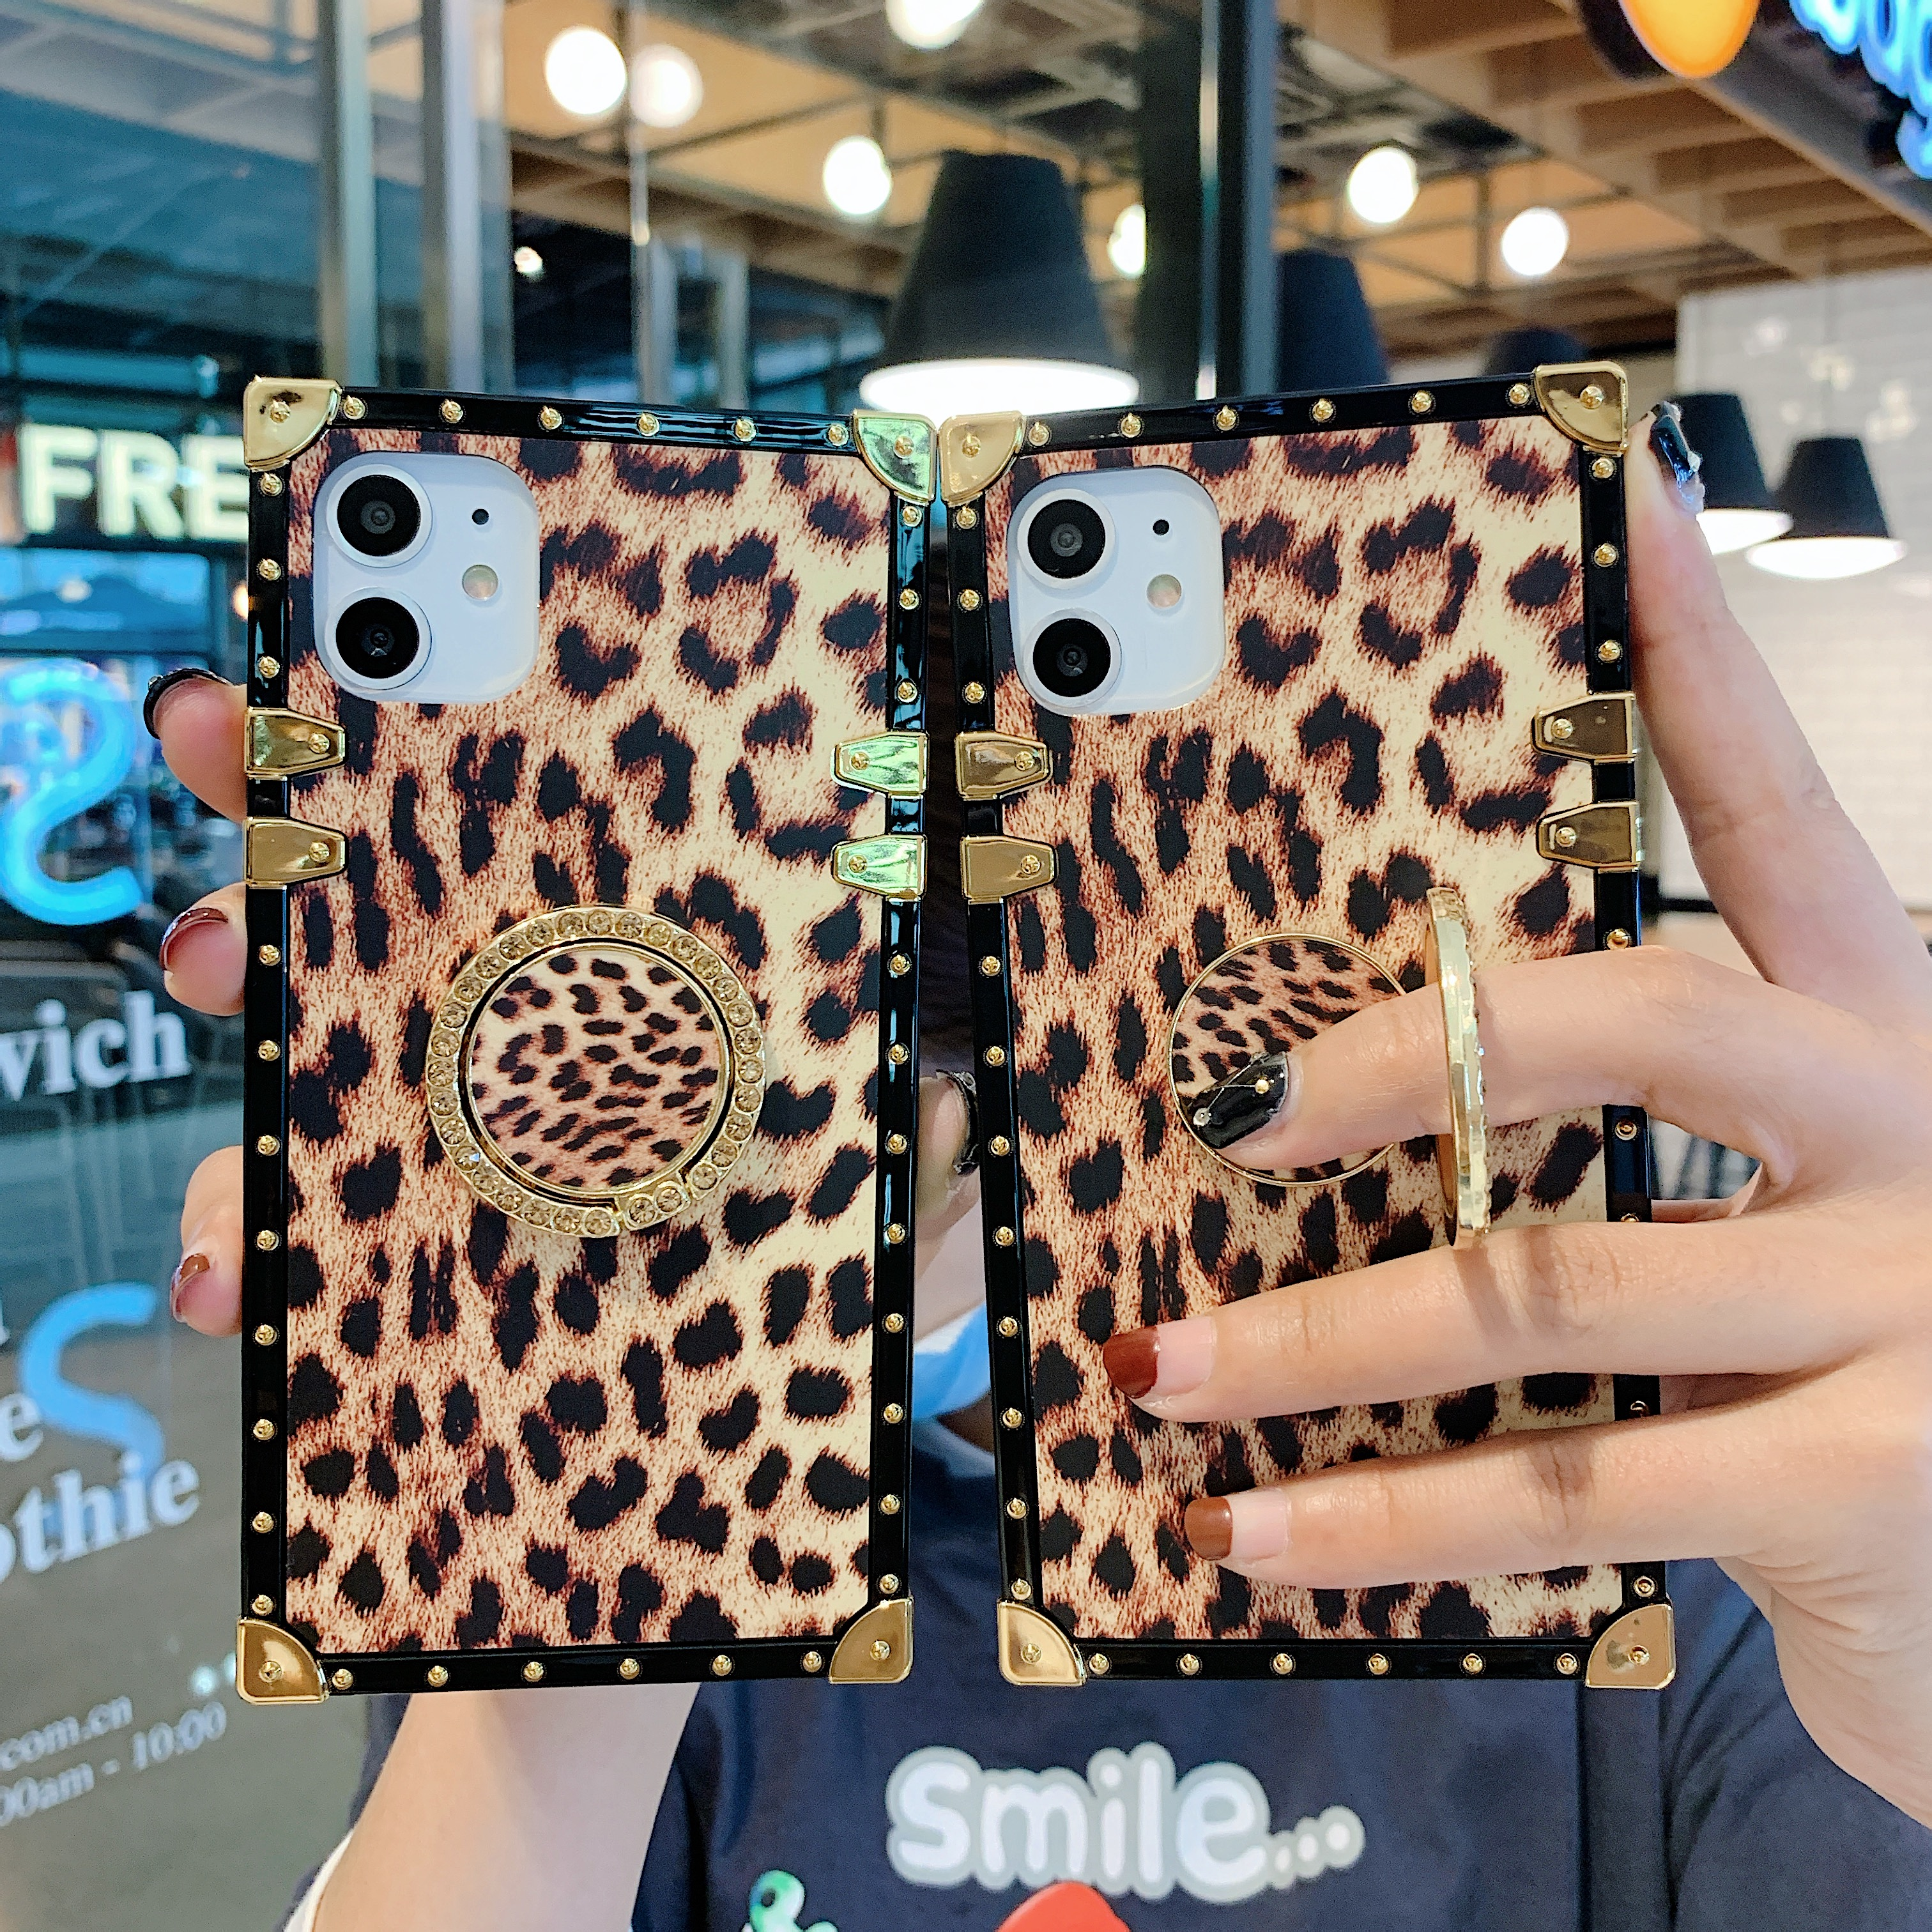 luxury sanke Leopard print <font><b>holder</b></font> <font><b>phone</b></font> <font><b>case</b></font> for <font><b>samsung</b></font> galaxy S20ultra S8 <font><b>S9</b></font> S10 S20 plus note8 note9 note10 pro cover capa image